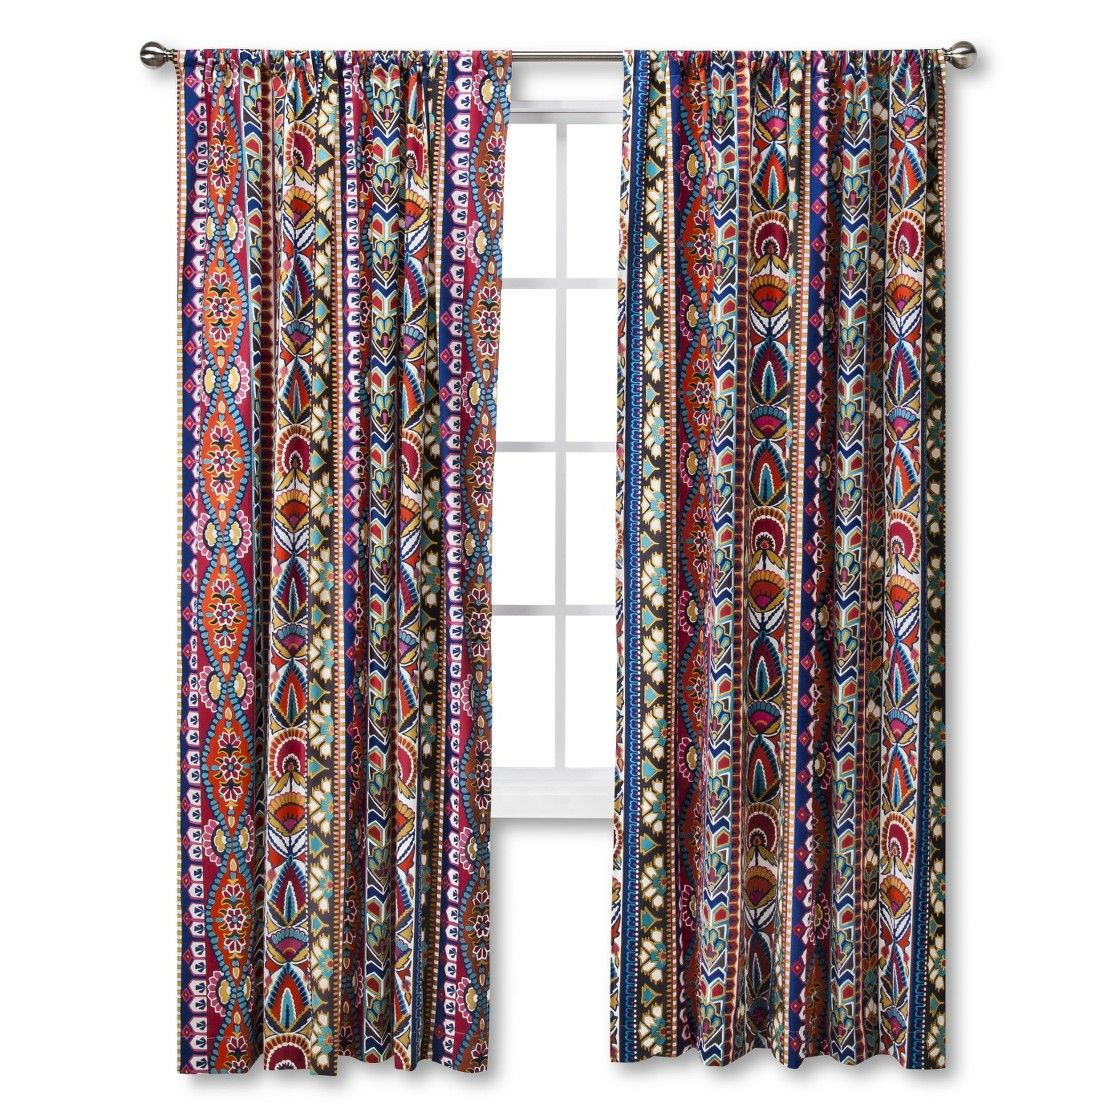 Burlap curtains are you kidding me what a backdrop - Mudhut Talavera Curtain Panel For Cuber Monday